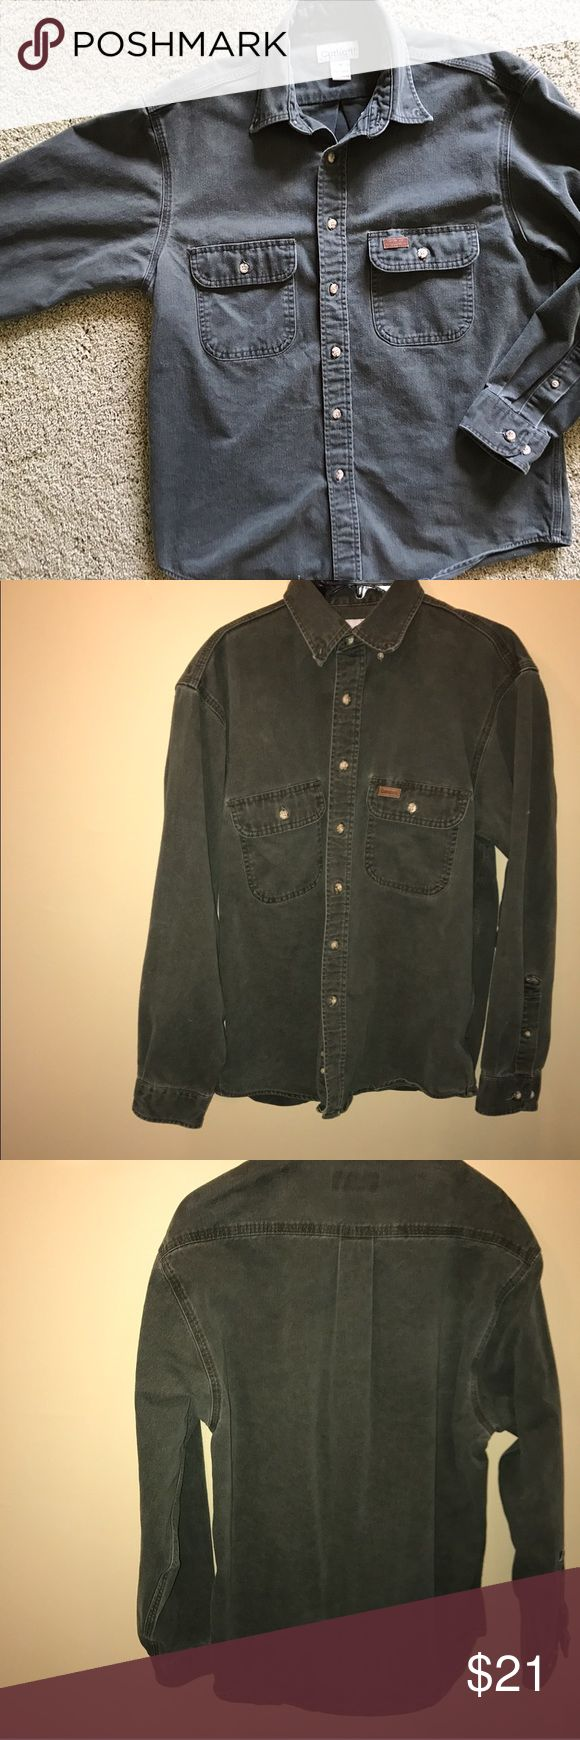 Men's Carharrt Green Twill Button Down Excellent used condition. 100% Features 2 chest pockets, and adjustable cuffs. Machine wash. (The difference in color in the pics is due to the flash being on in the photos that the shirt is hanging up in- it's super hard to get an accurate color of this in a photo, so I decided to show both 😜.) Carhartt Shirts Casual Button Down Shirts